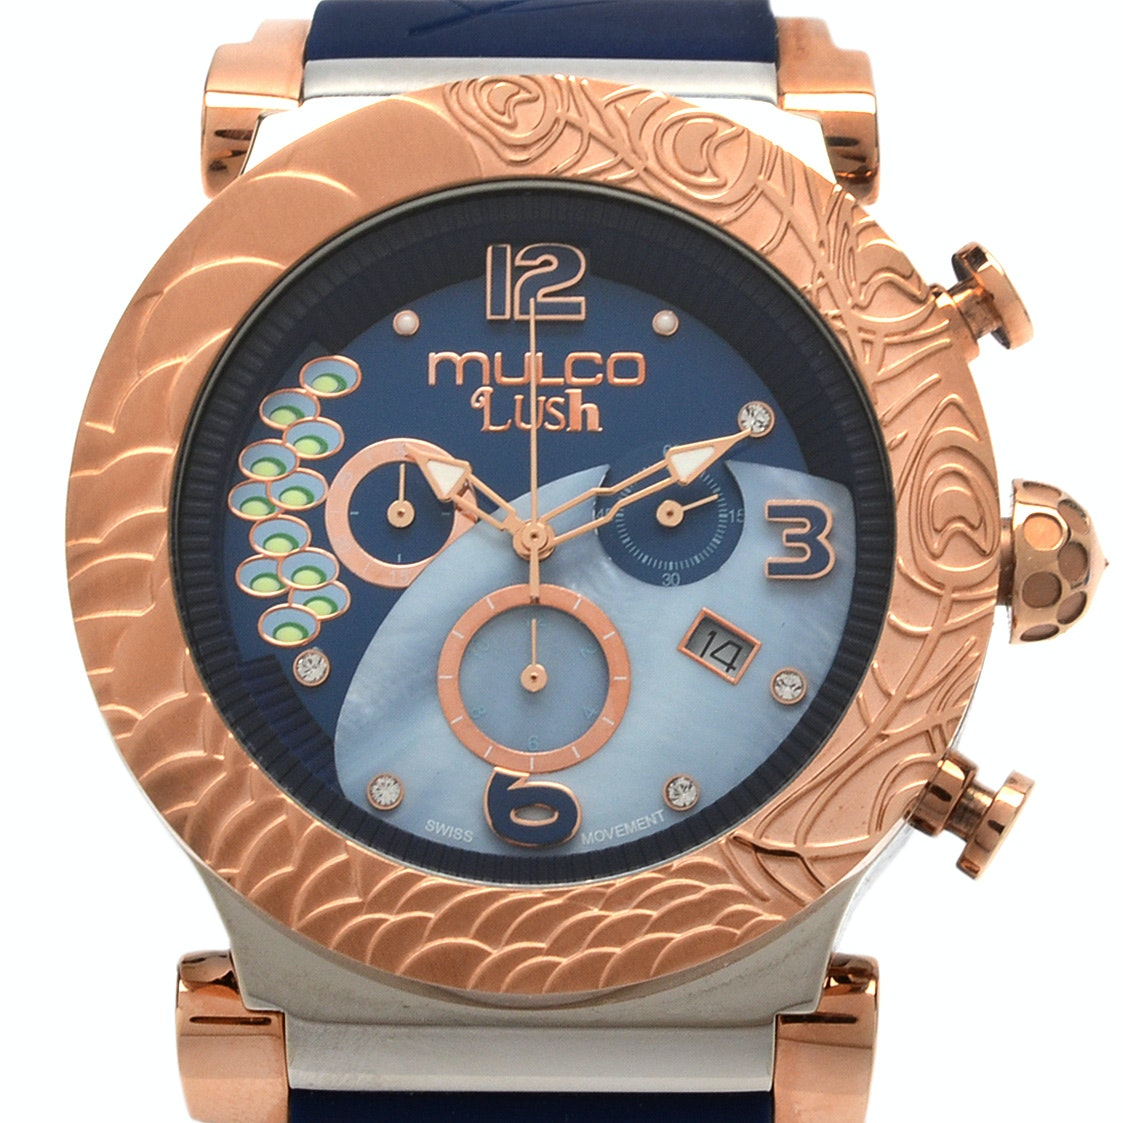 Mulco Lush Peacock Chronograph Analog Watch Wristwatch